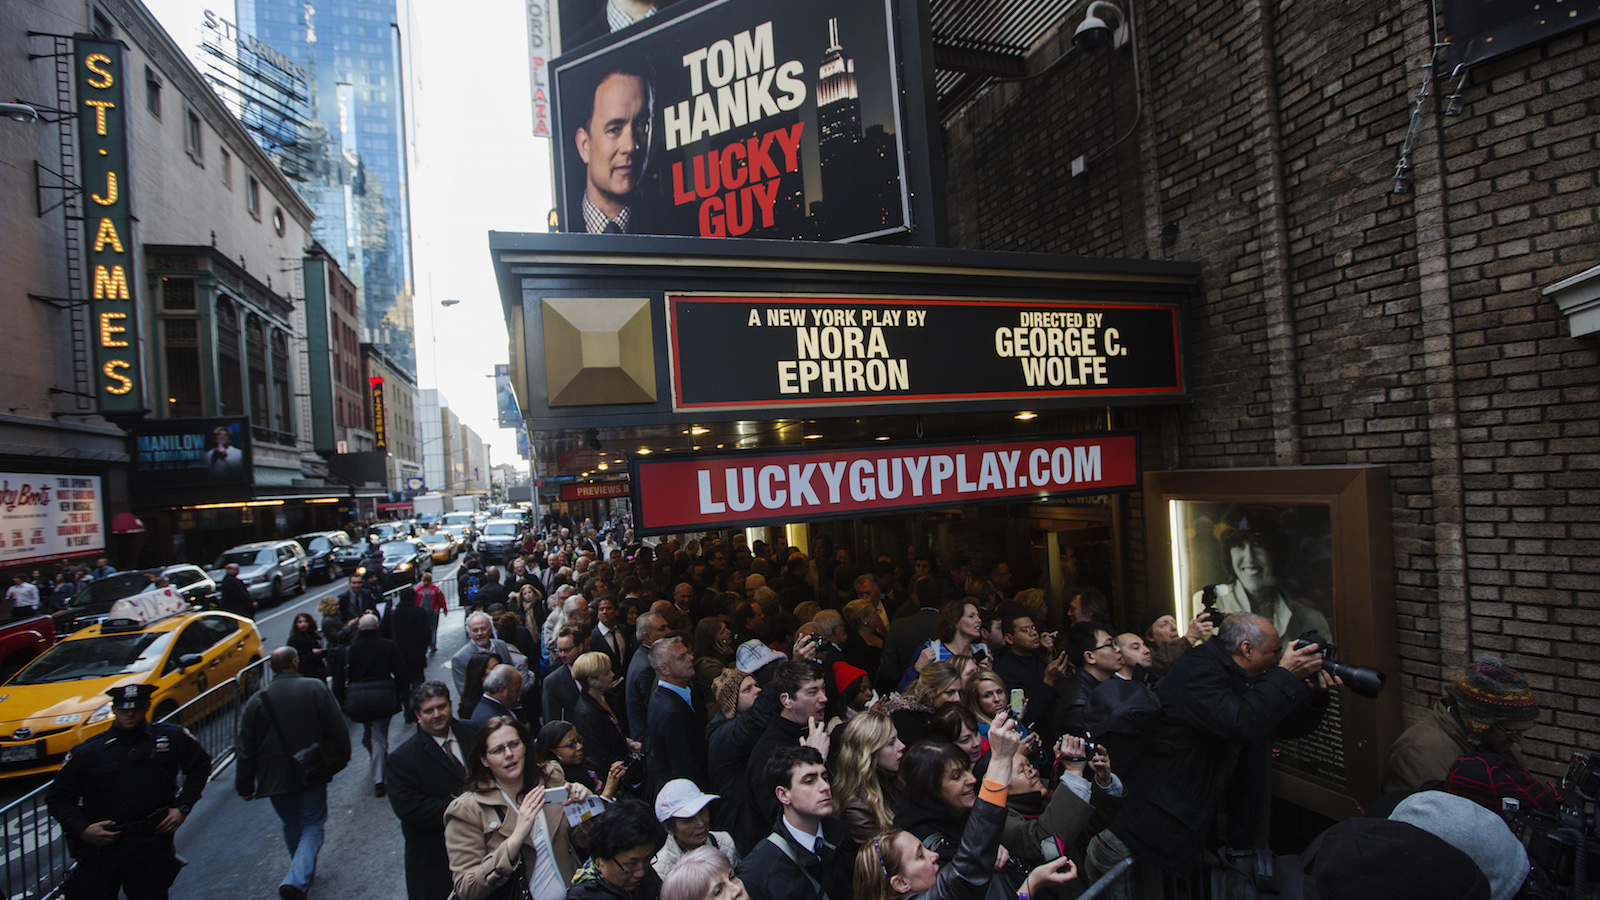 Fans line up outside Broadhurst Theater to watch movie stars arrive for the premiere of the play Lucky Guy in New York